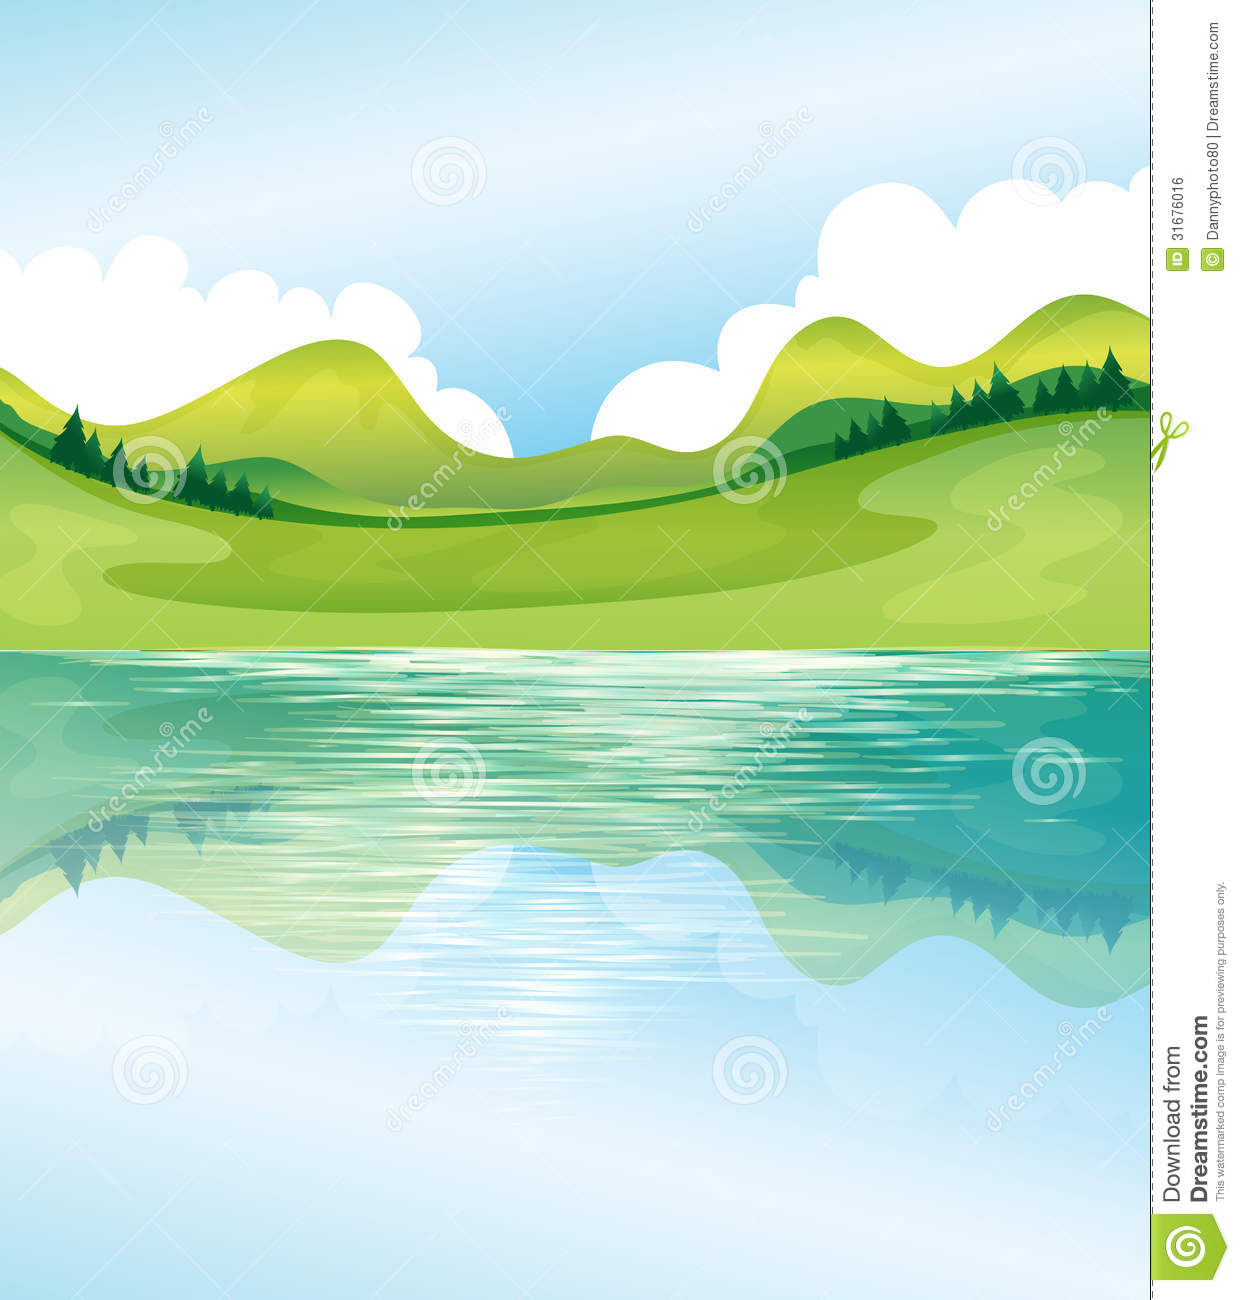 Clipart For Water Land And Air.